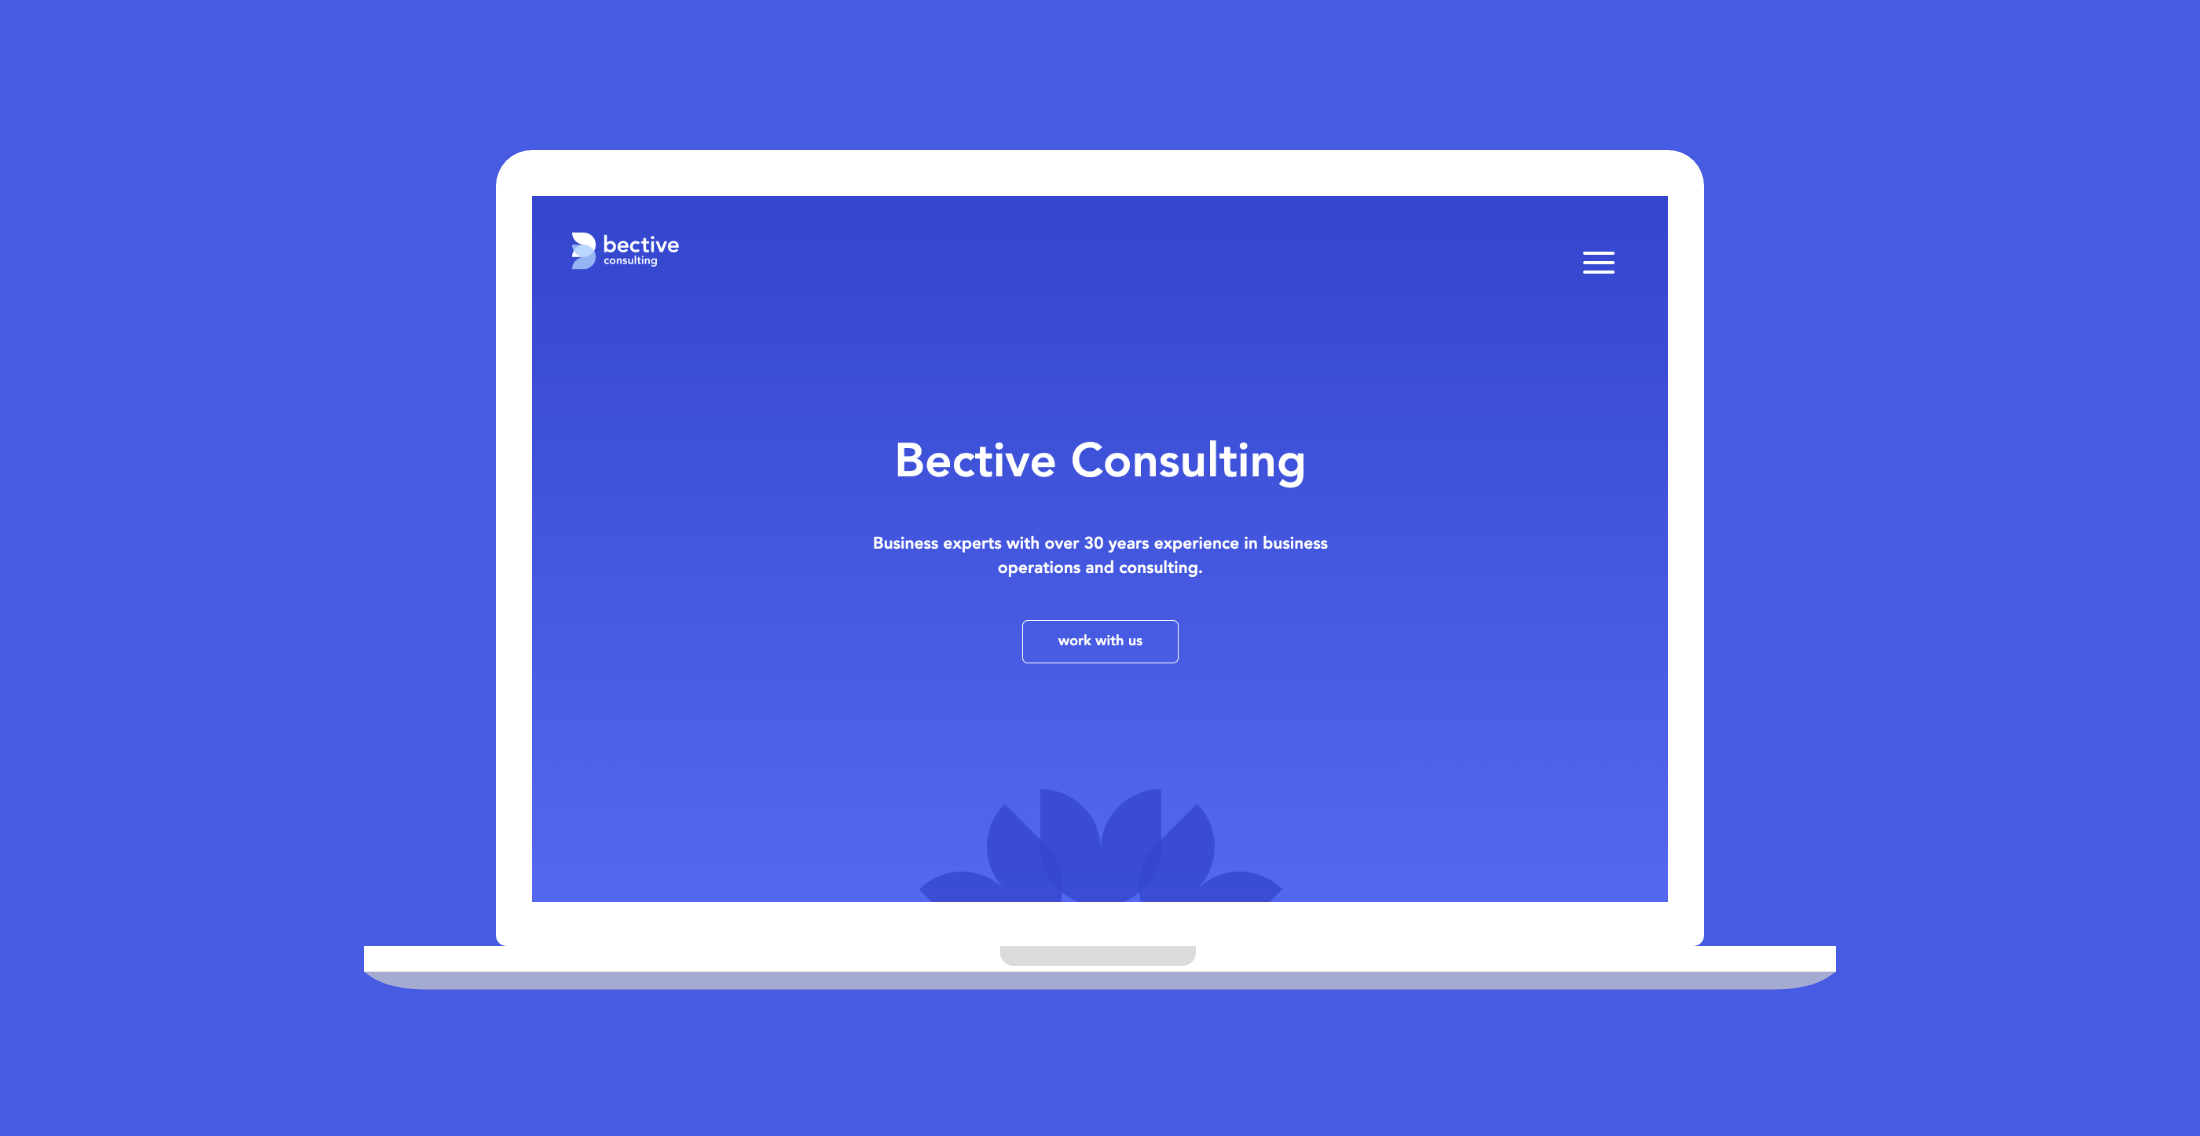 Bective Consulting website on laptop